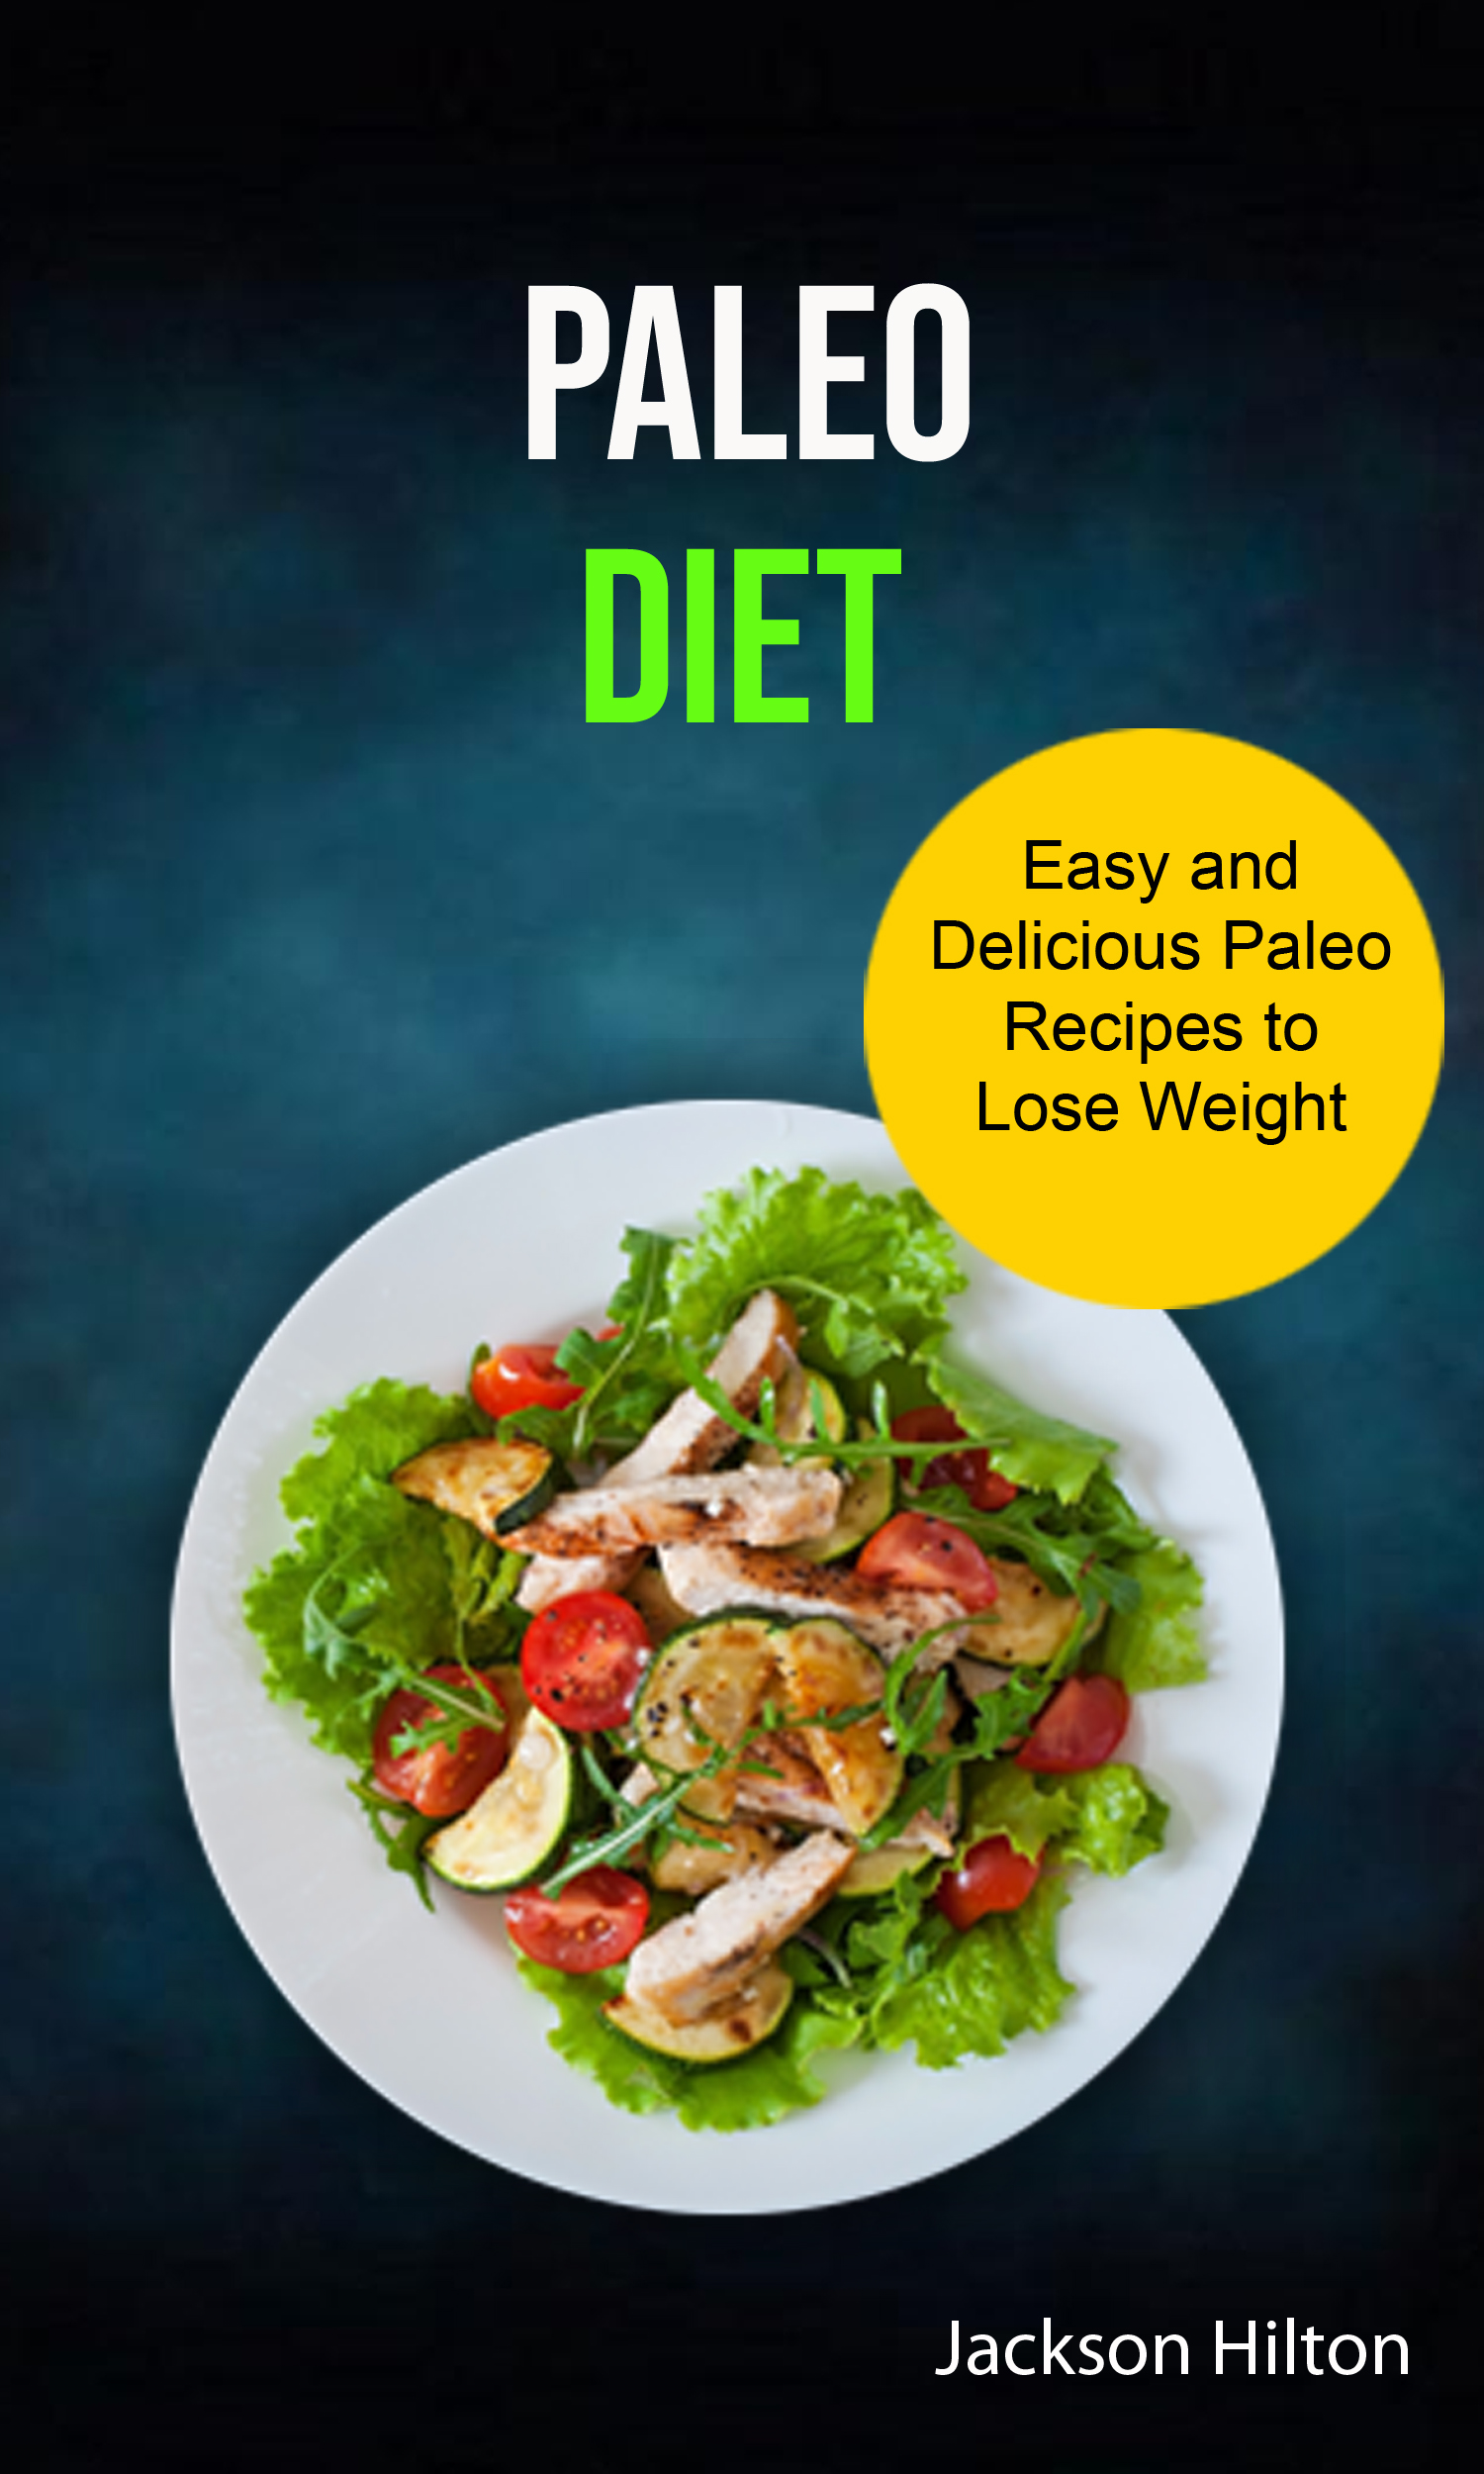 Paleo diet: easy and delicious paleo recipes to lose weight